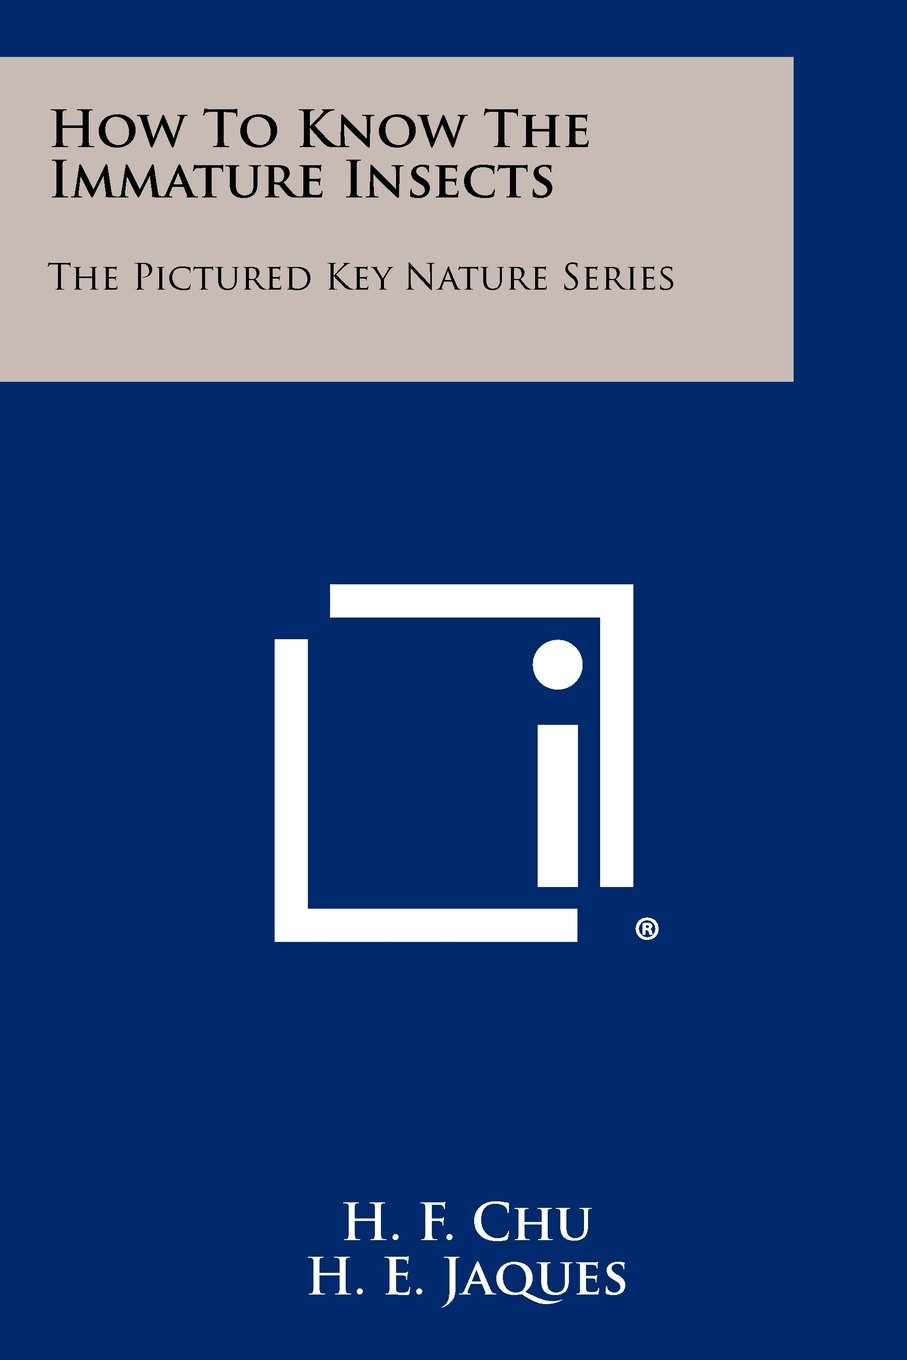 How To Know The Immature Insects: The Pictured Key Nature Series ebook